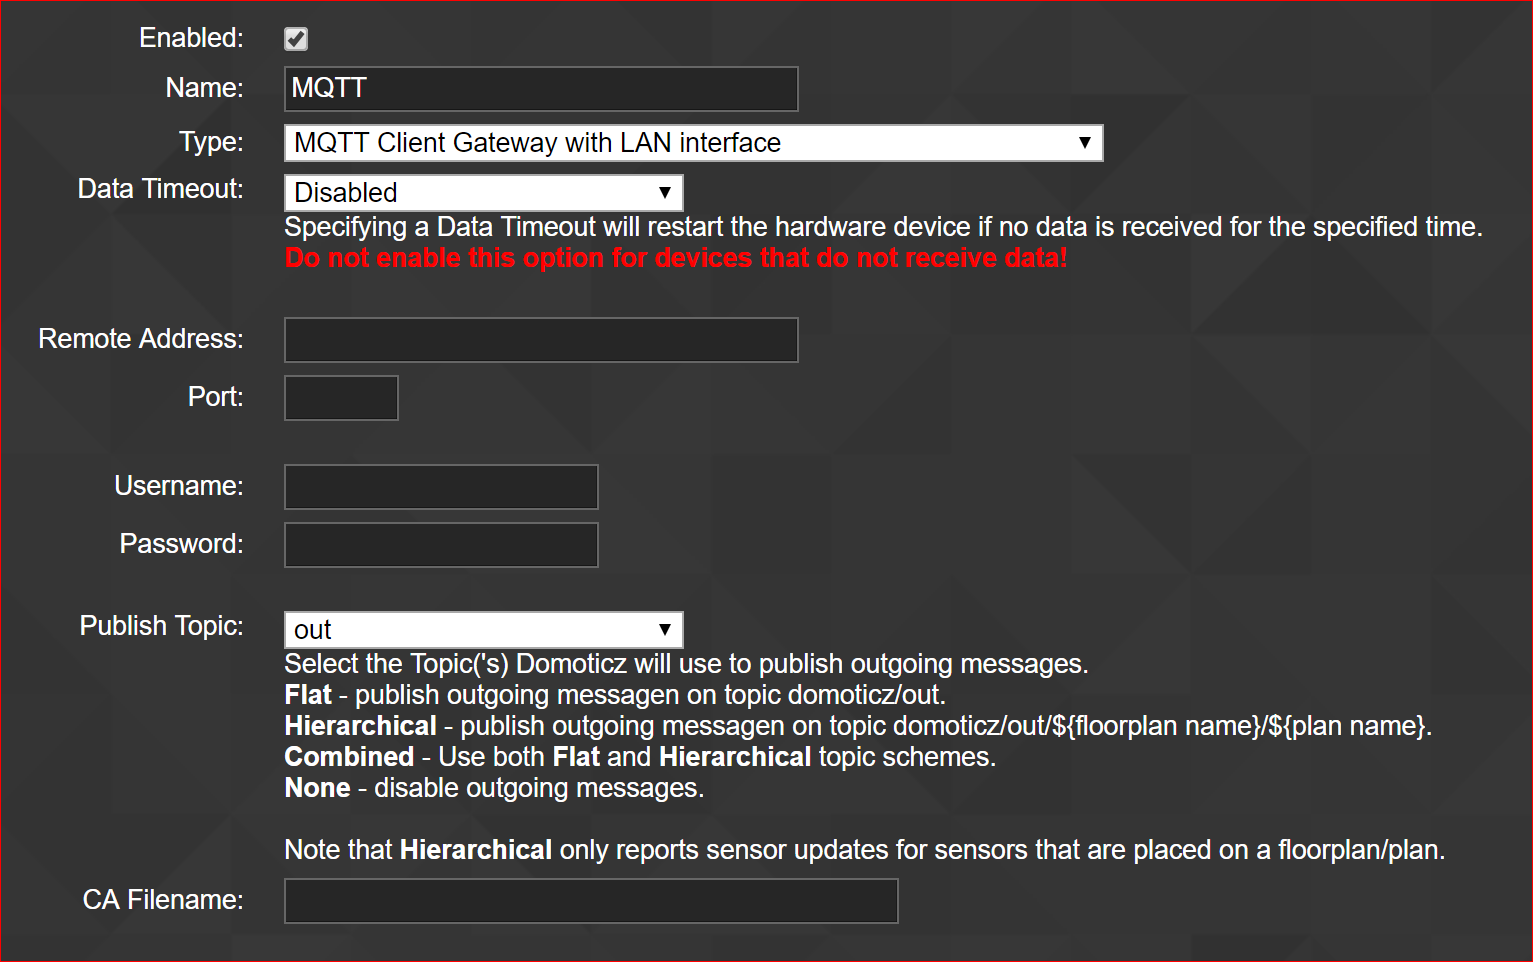 Hardware - MQTT Client gateway with LAN interface does not support